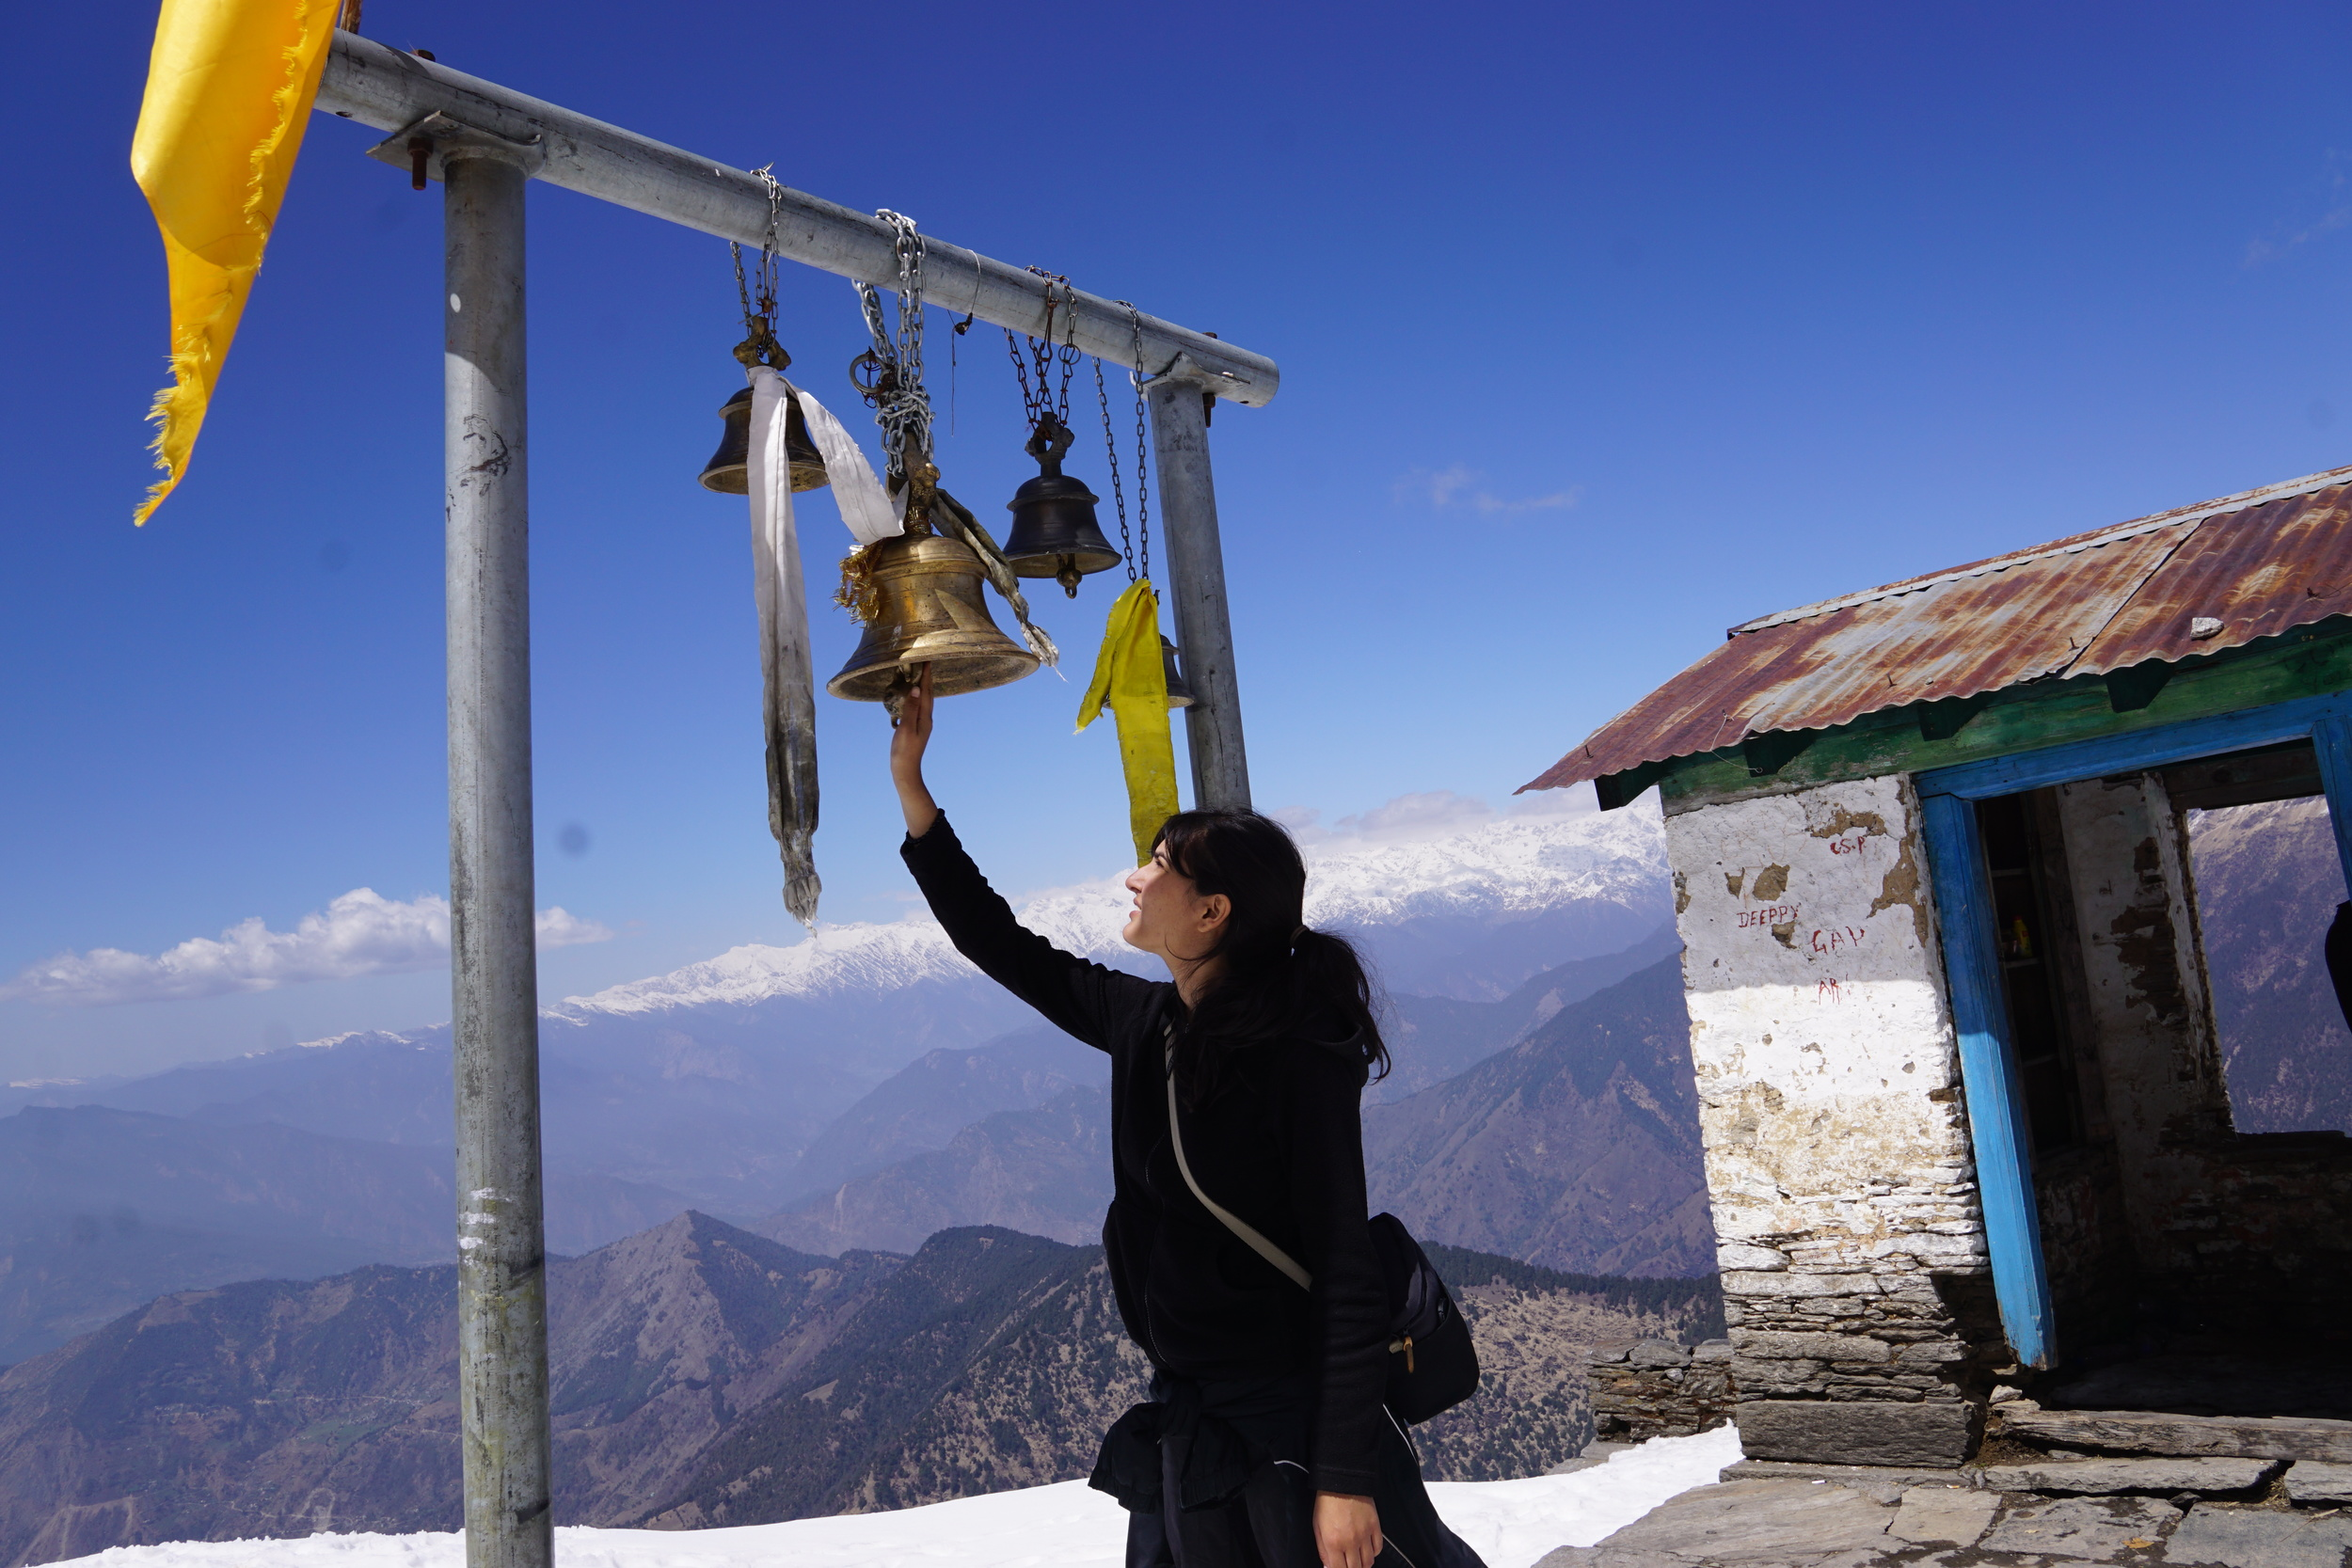 The vibrations on top of Tungnath as I hit the bell were the closest thing to attaining enlightenment. The temple bells on the street were nowhere close to what I had experienced here.